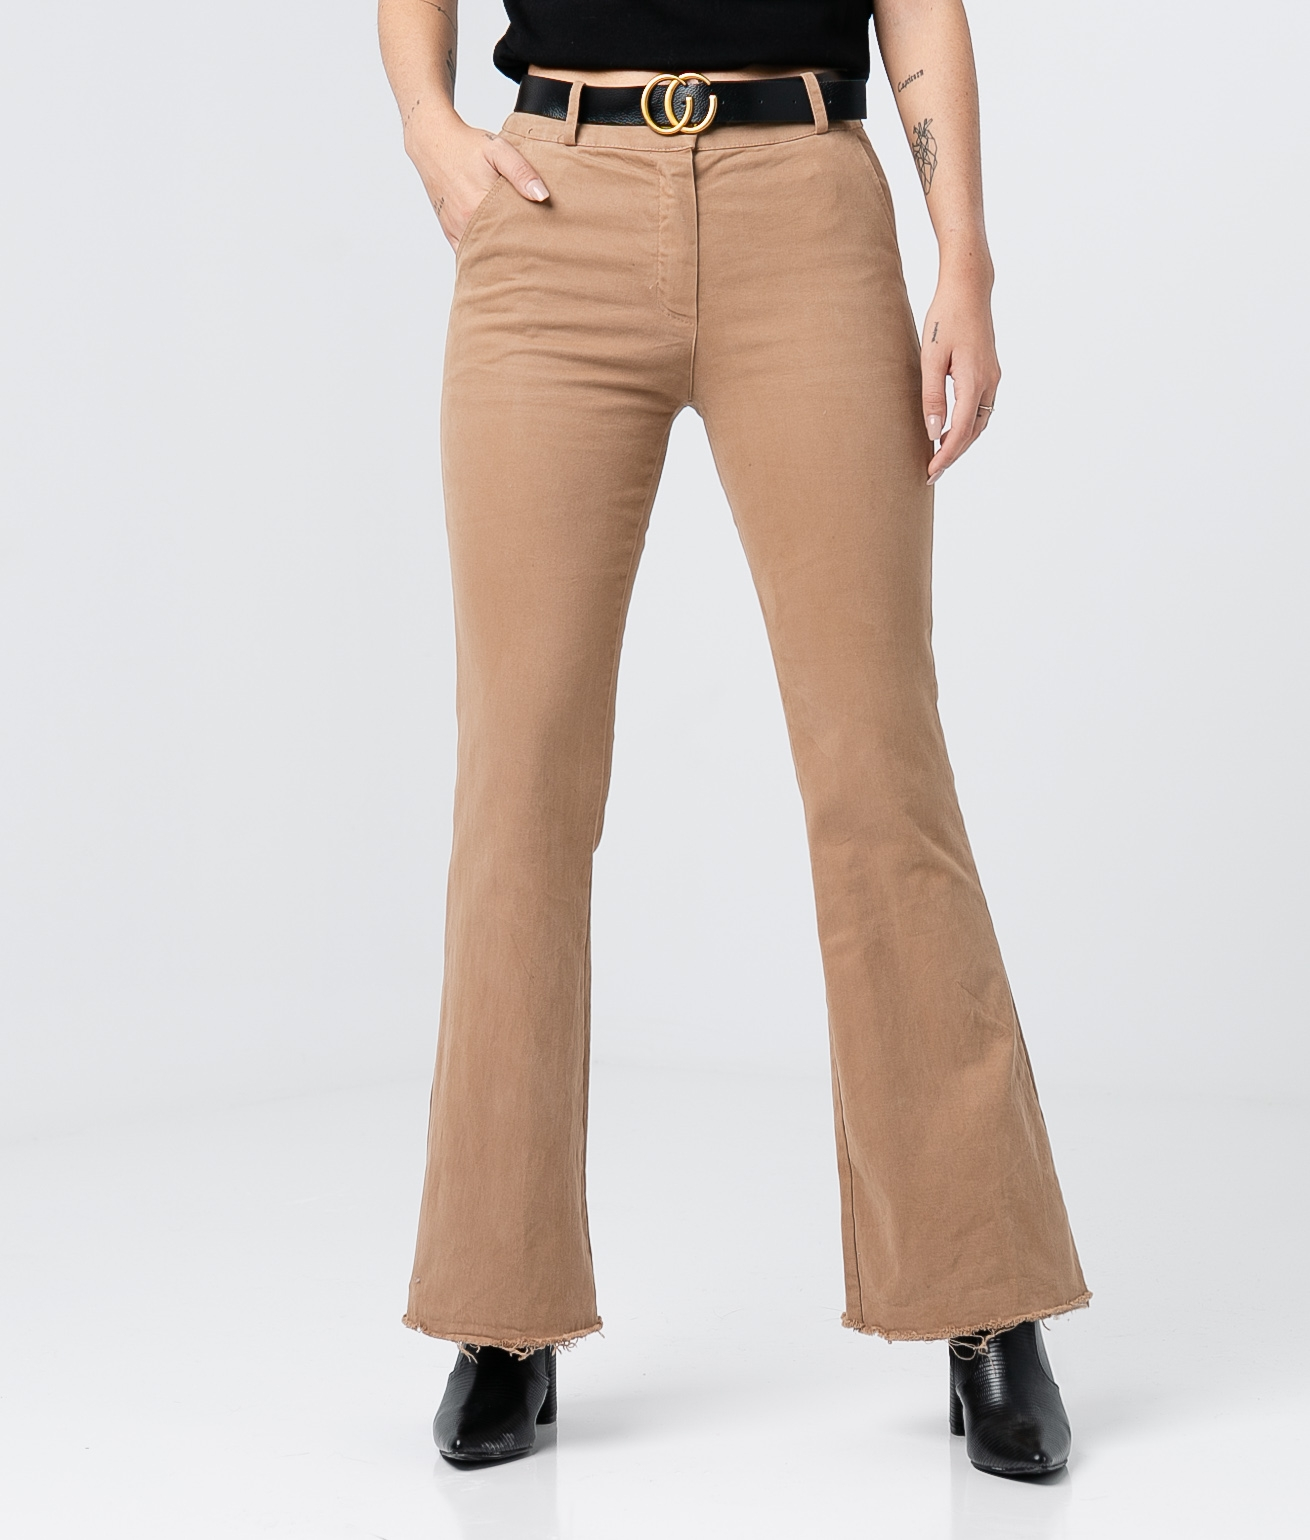 RONAES TROUSERS - CAMEL